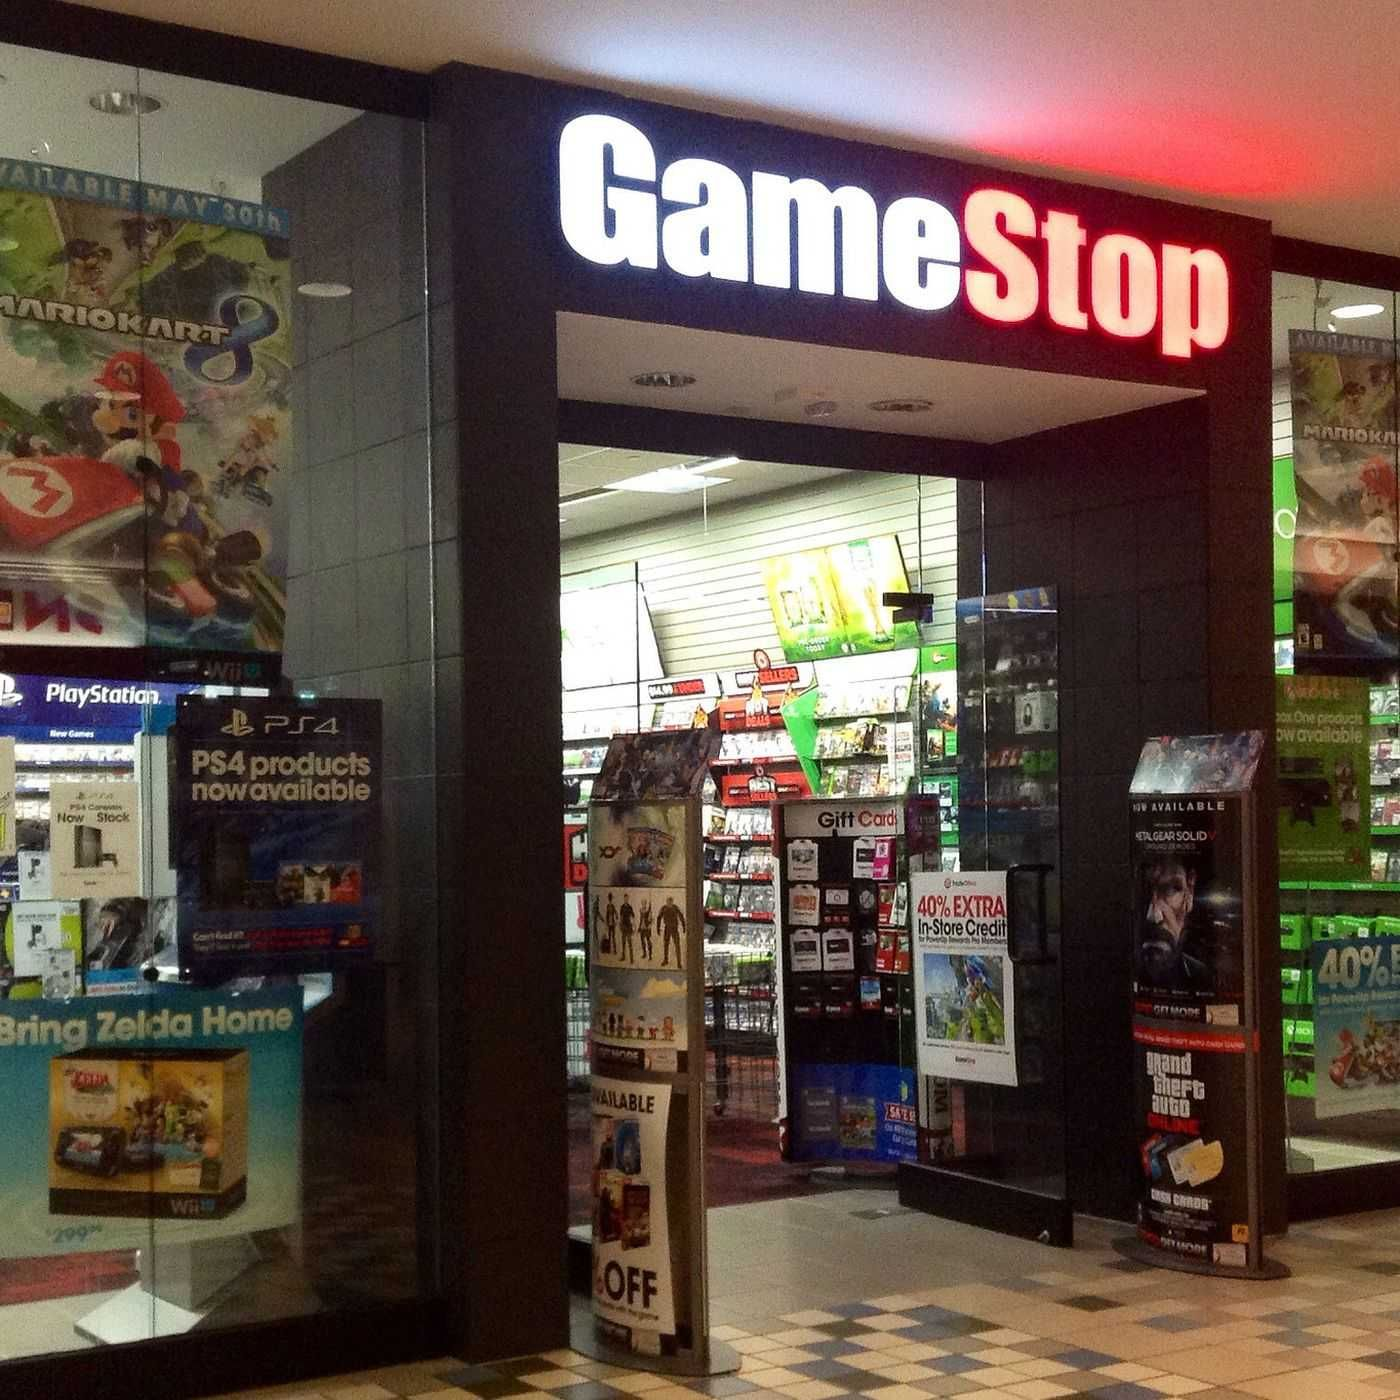 Roblox Gift Card Prices Gamestop - How To Get Free Robux ...